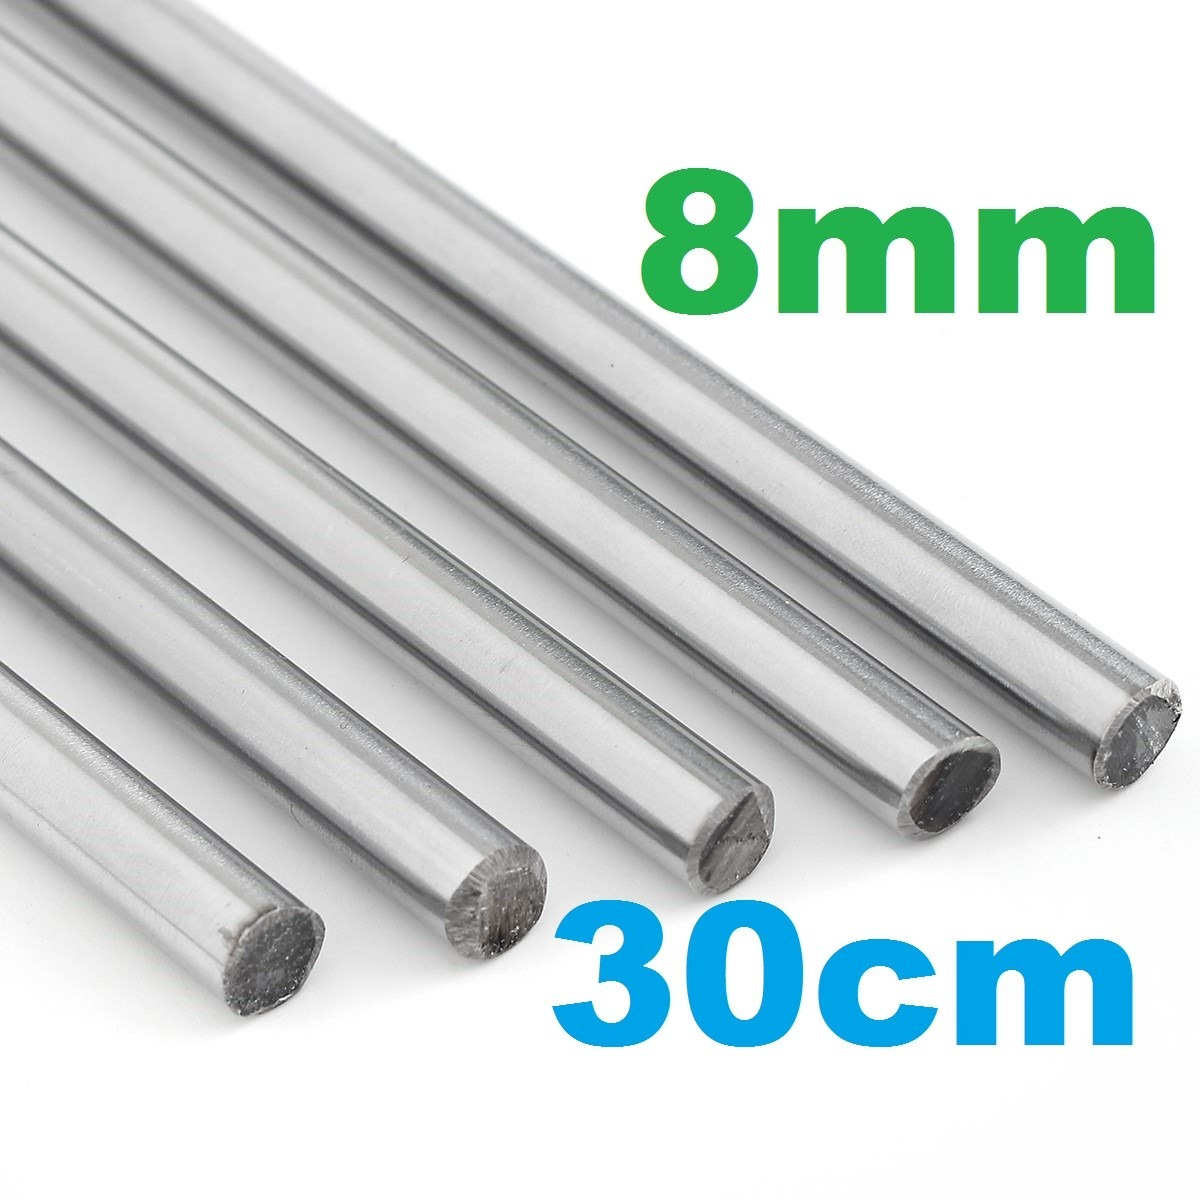 Varilla 30cm eje lineal 8mm acero inoxidable grbl cnc 3d - Varillas de acero inoxidable ...